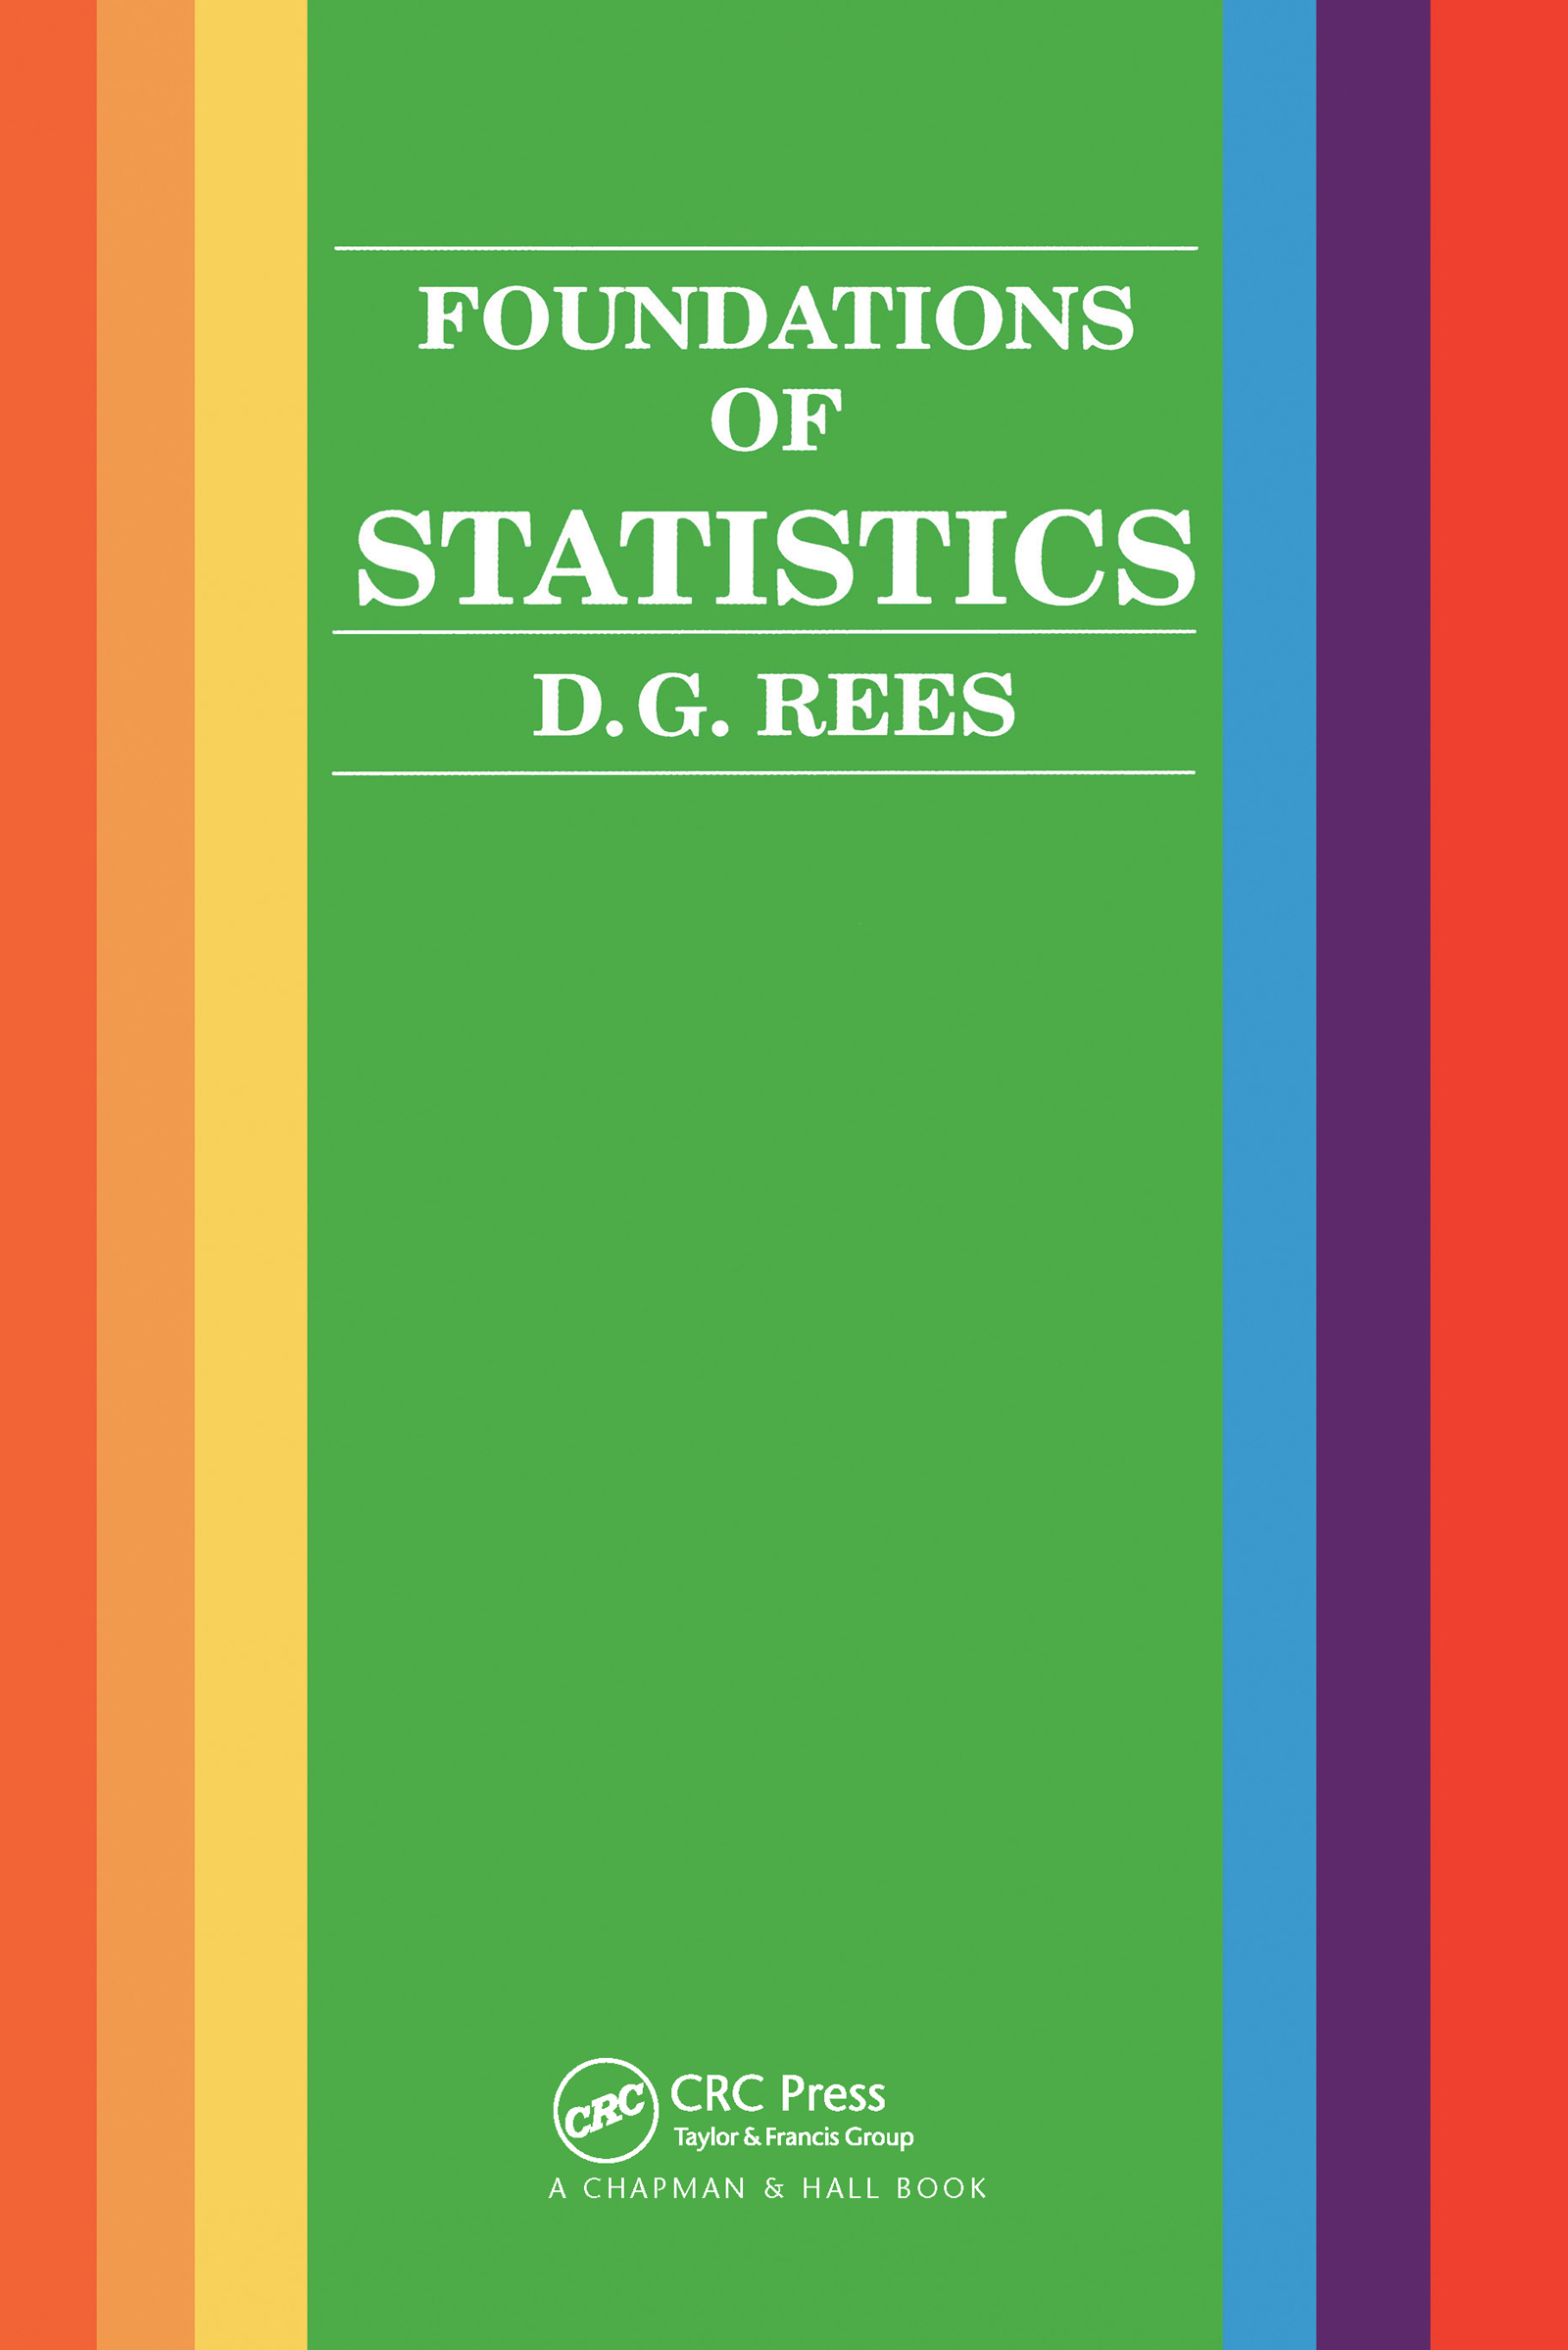 Foundations of Statistics: 1st Edition (Paperback) book cover